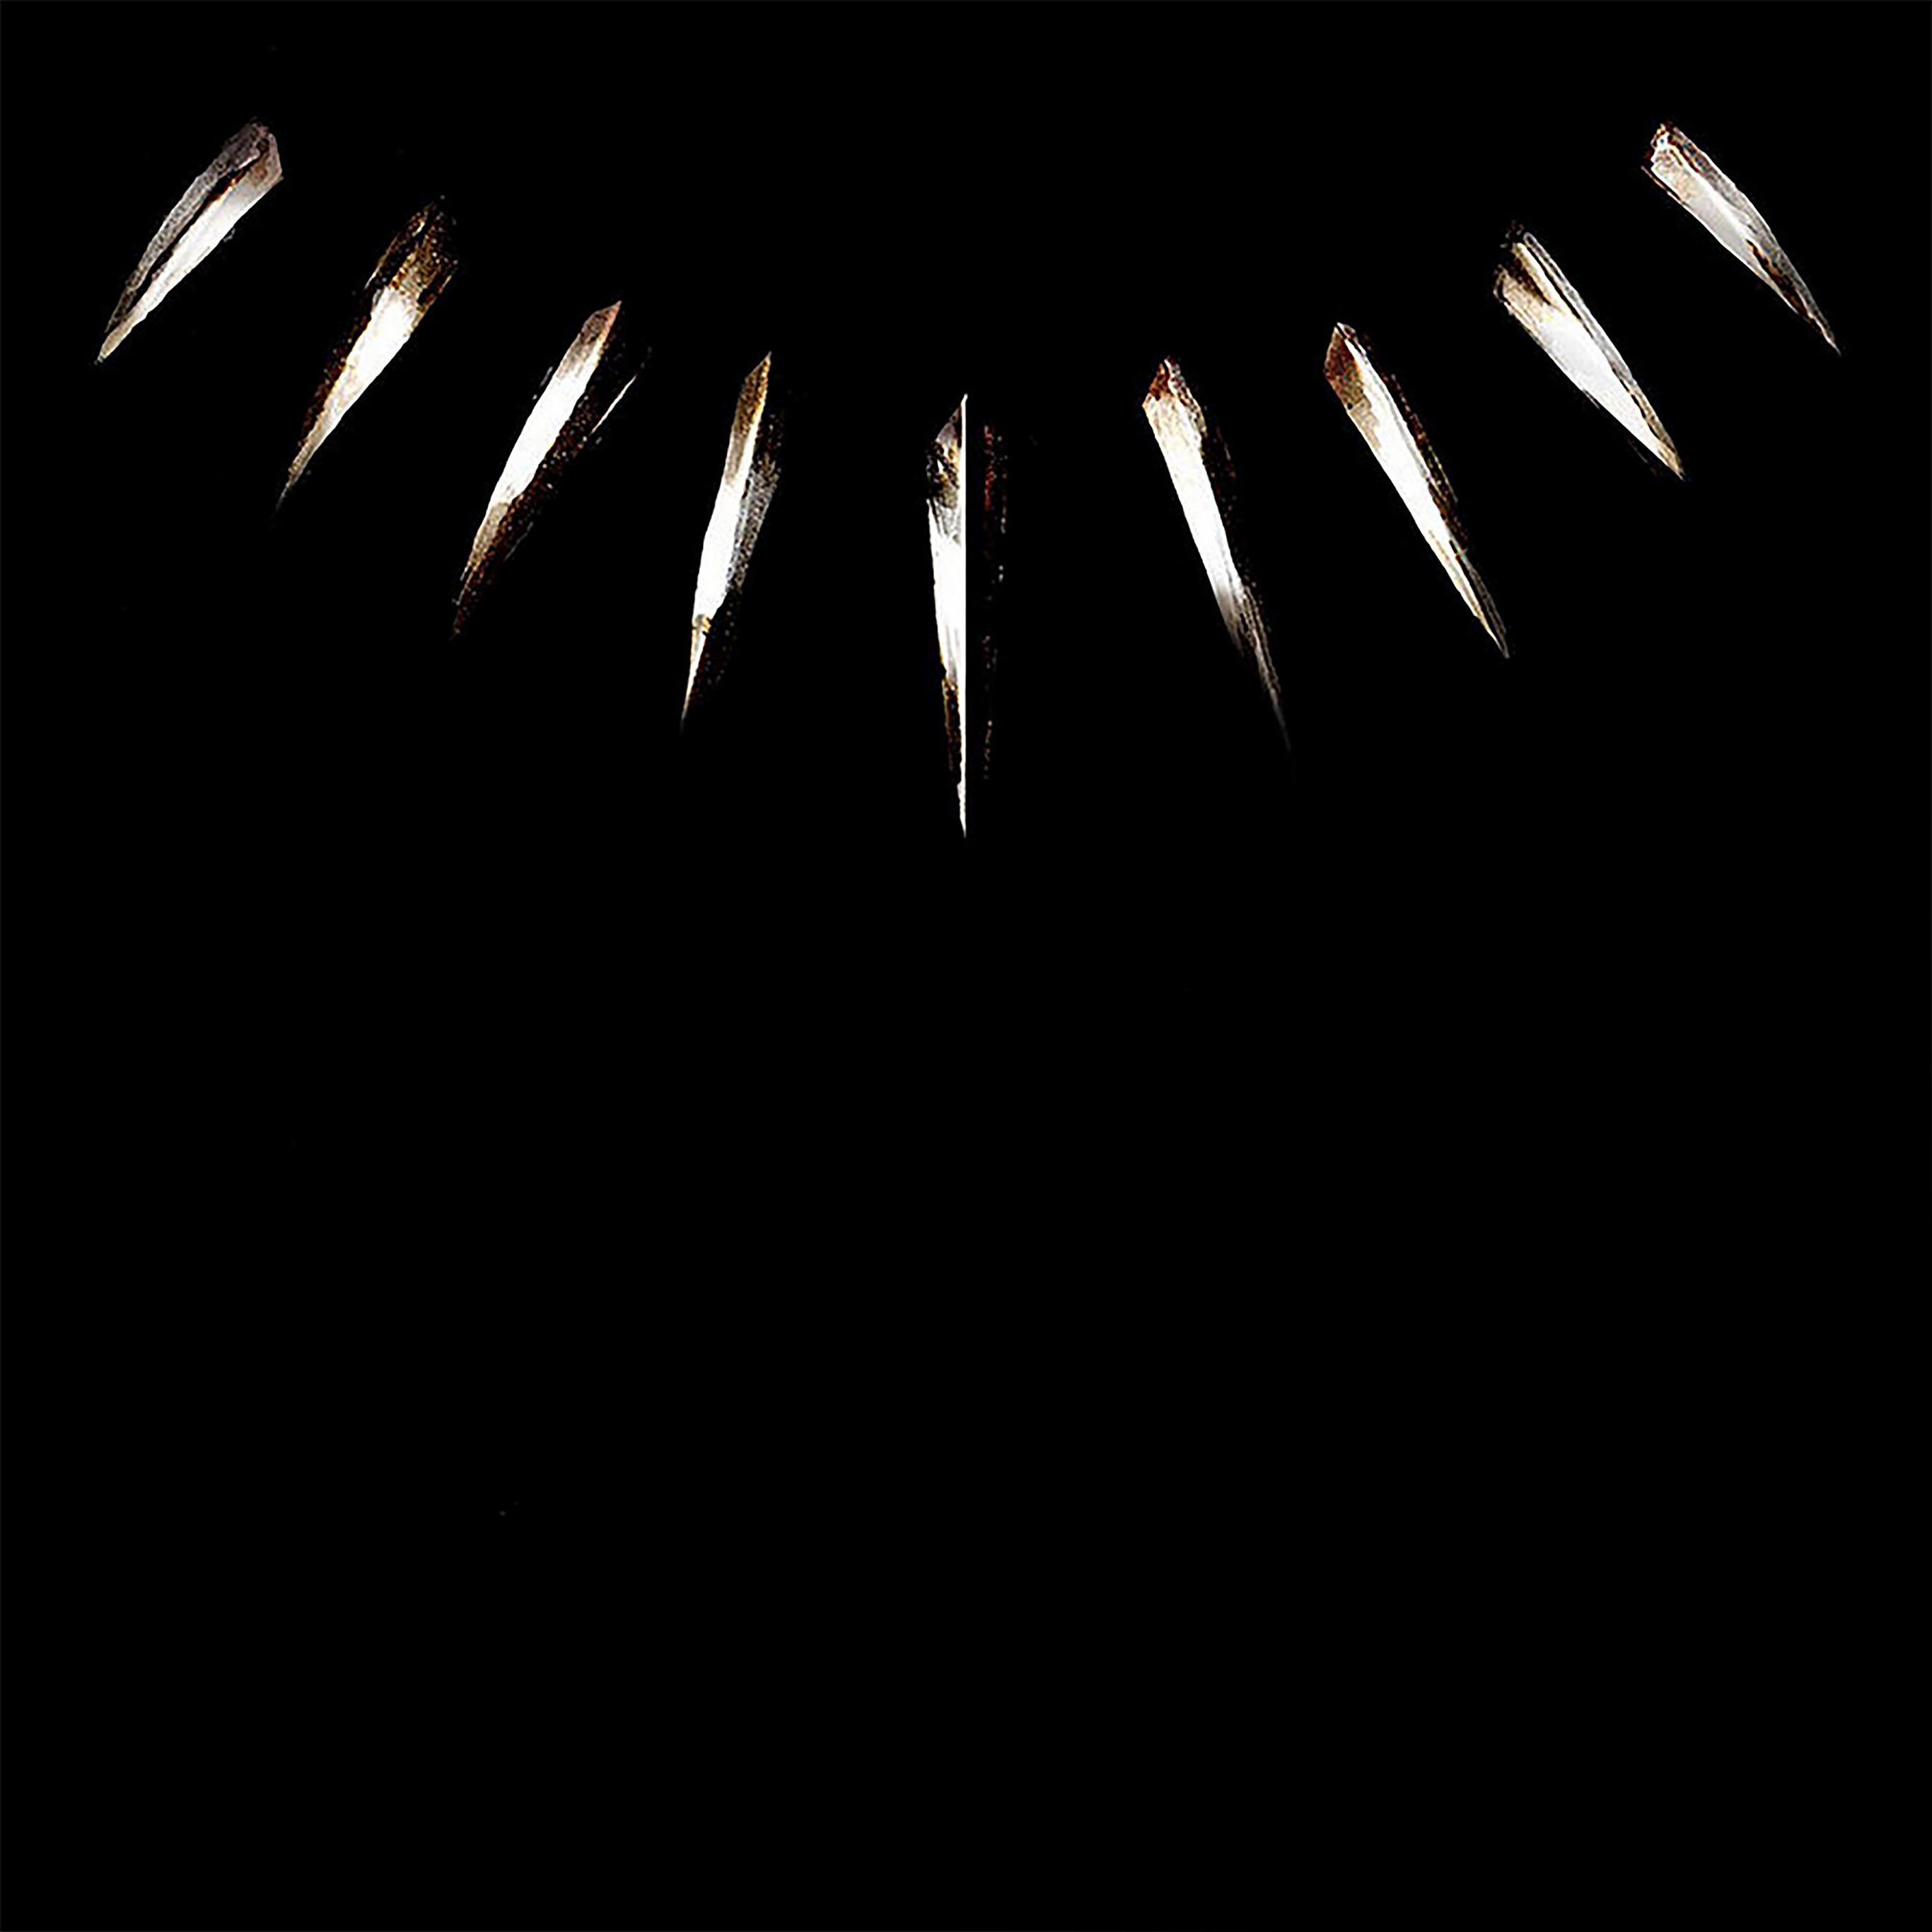 Black Panther Wallpapers Top Free Black Panther Backgrounds